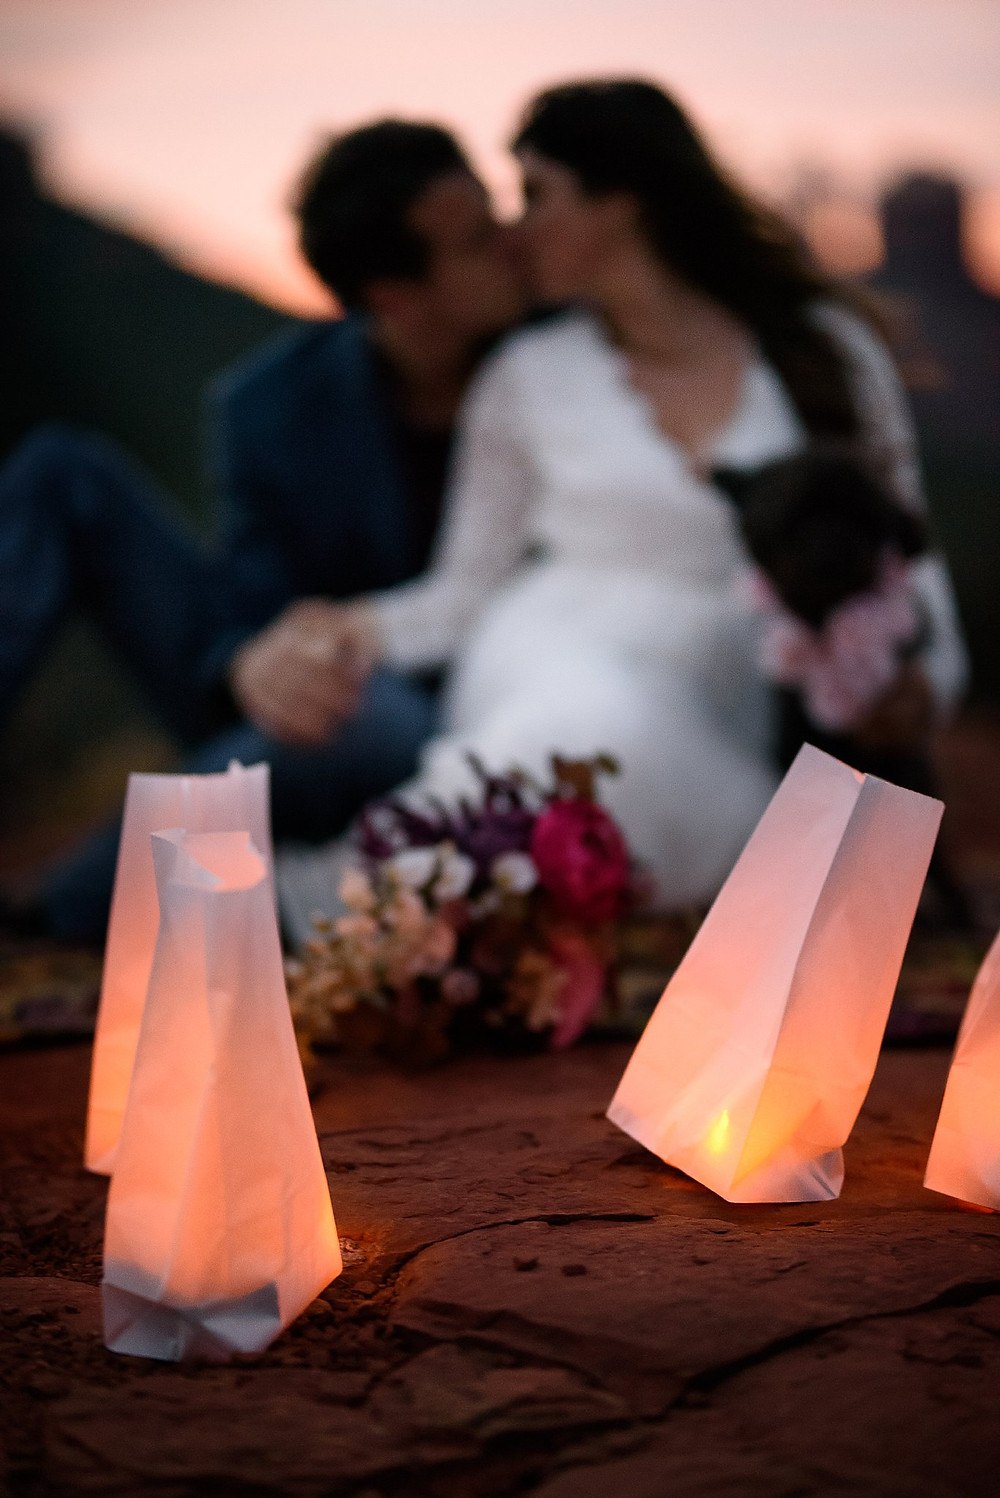 Sunset Sedona Elopement lite by luminaries